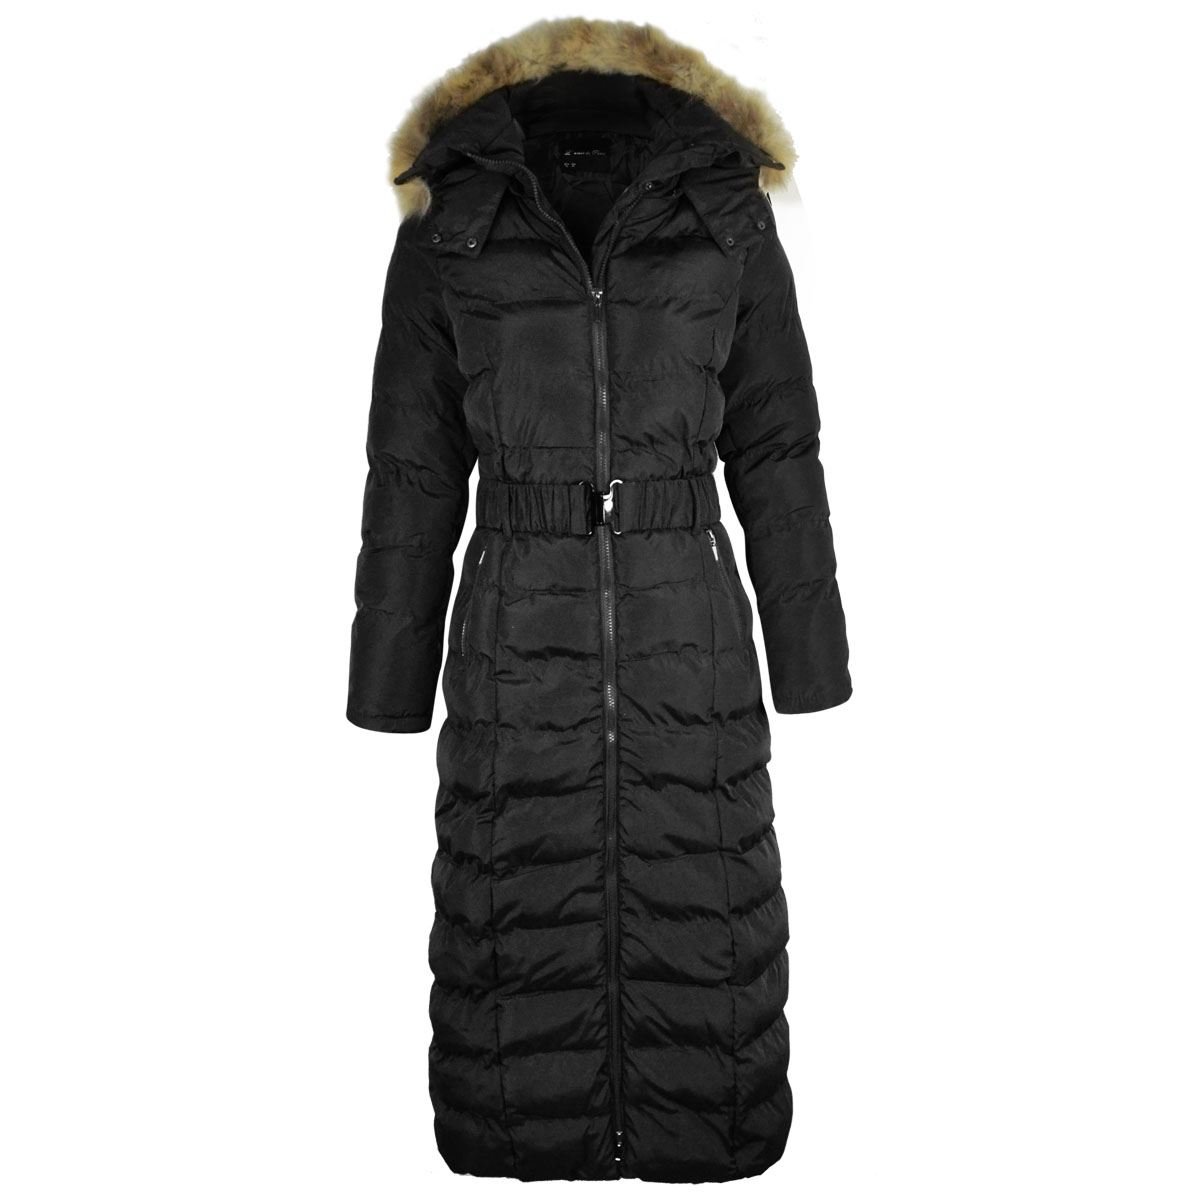 LADIES WOMENS LONG BODY FULL LENGTH PADDED QUILTED PUFFER JACKET ...